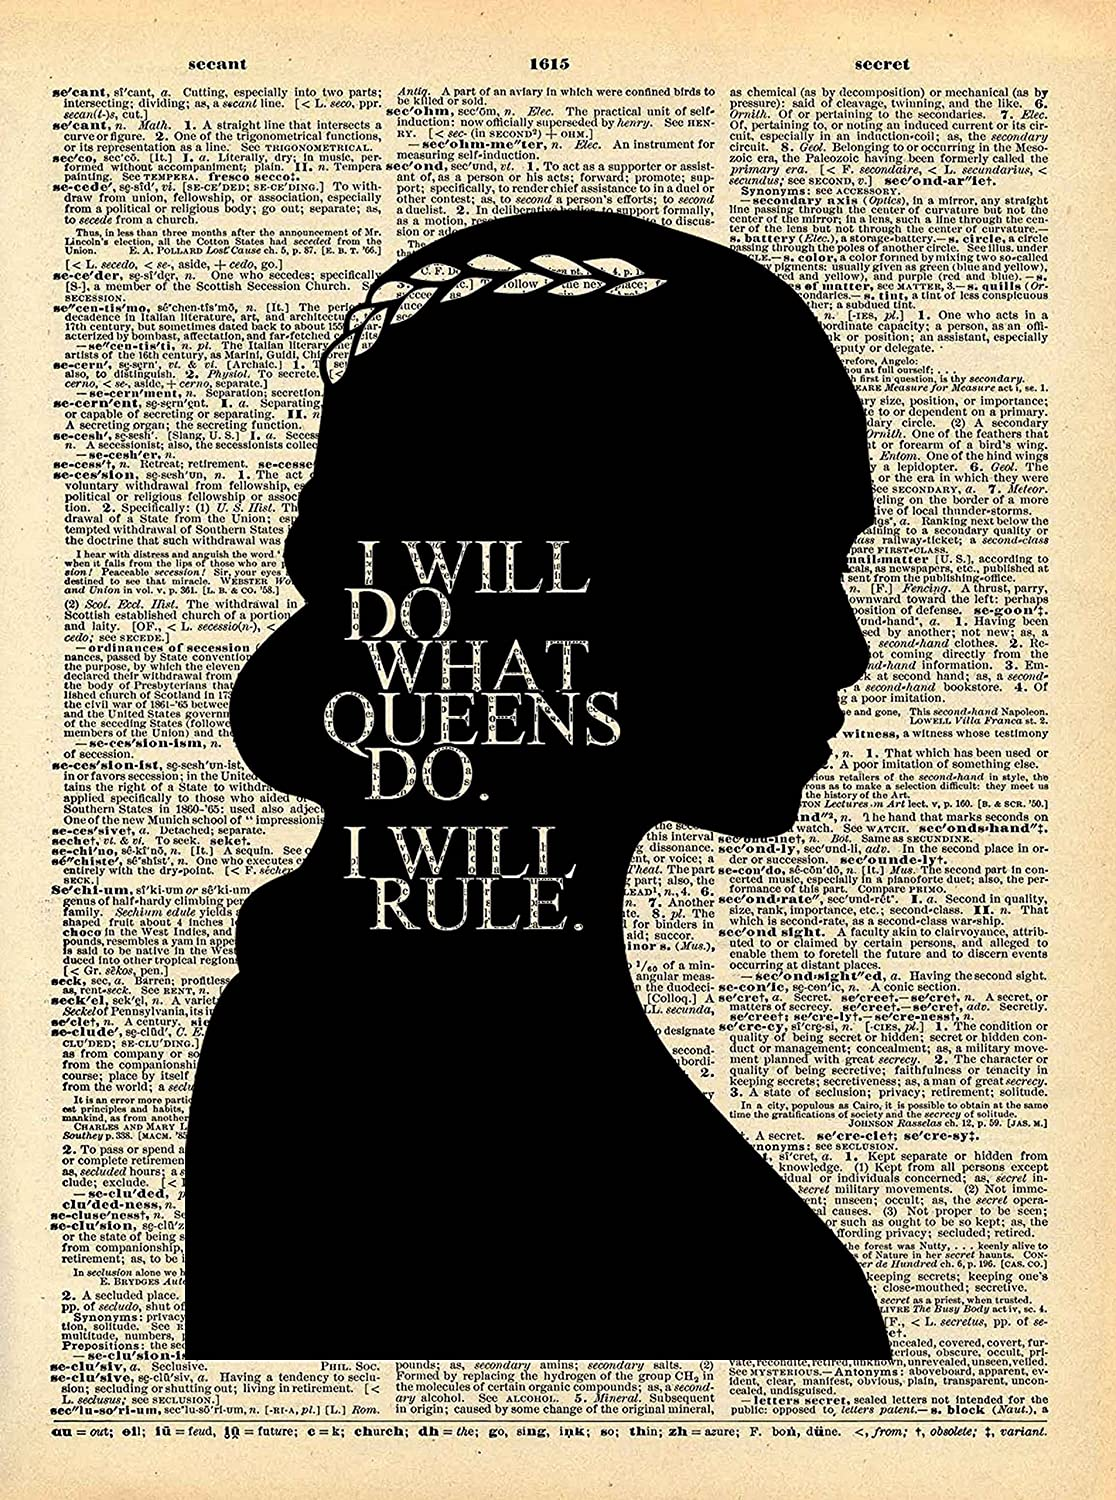 Game of Thrones Art - Khaleesi Queen Rule Quote - Vintage Dictionary Print 8x10 inch Home Vintage Art Abstract Prints Wall Art for Home Decor Wall Decorations Ready-to-Frame Queen